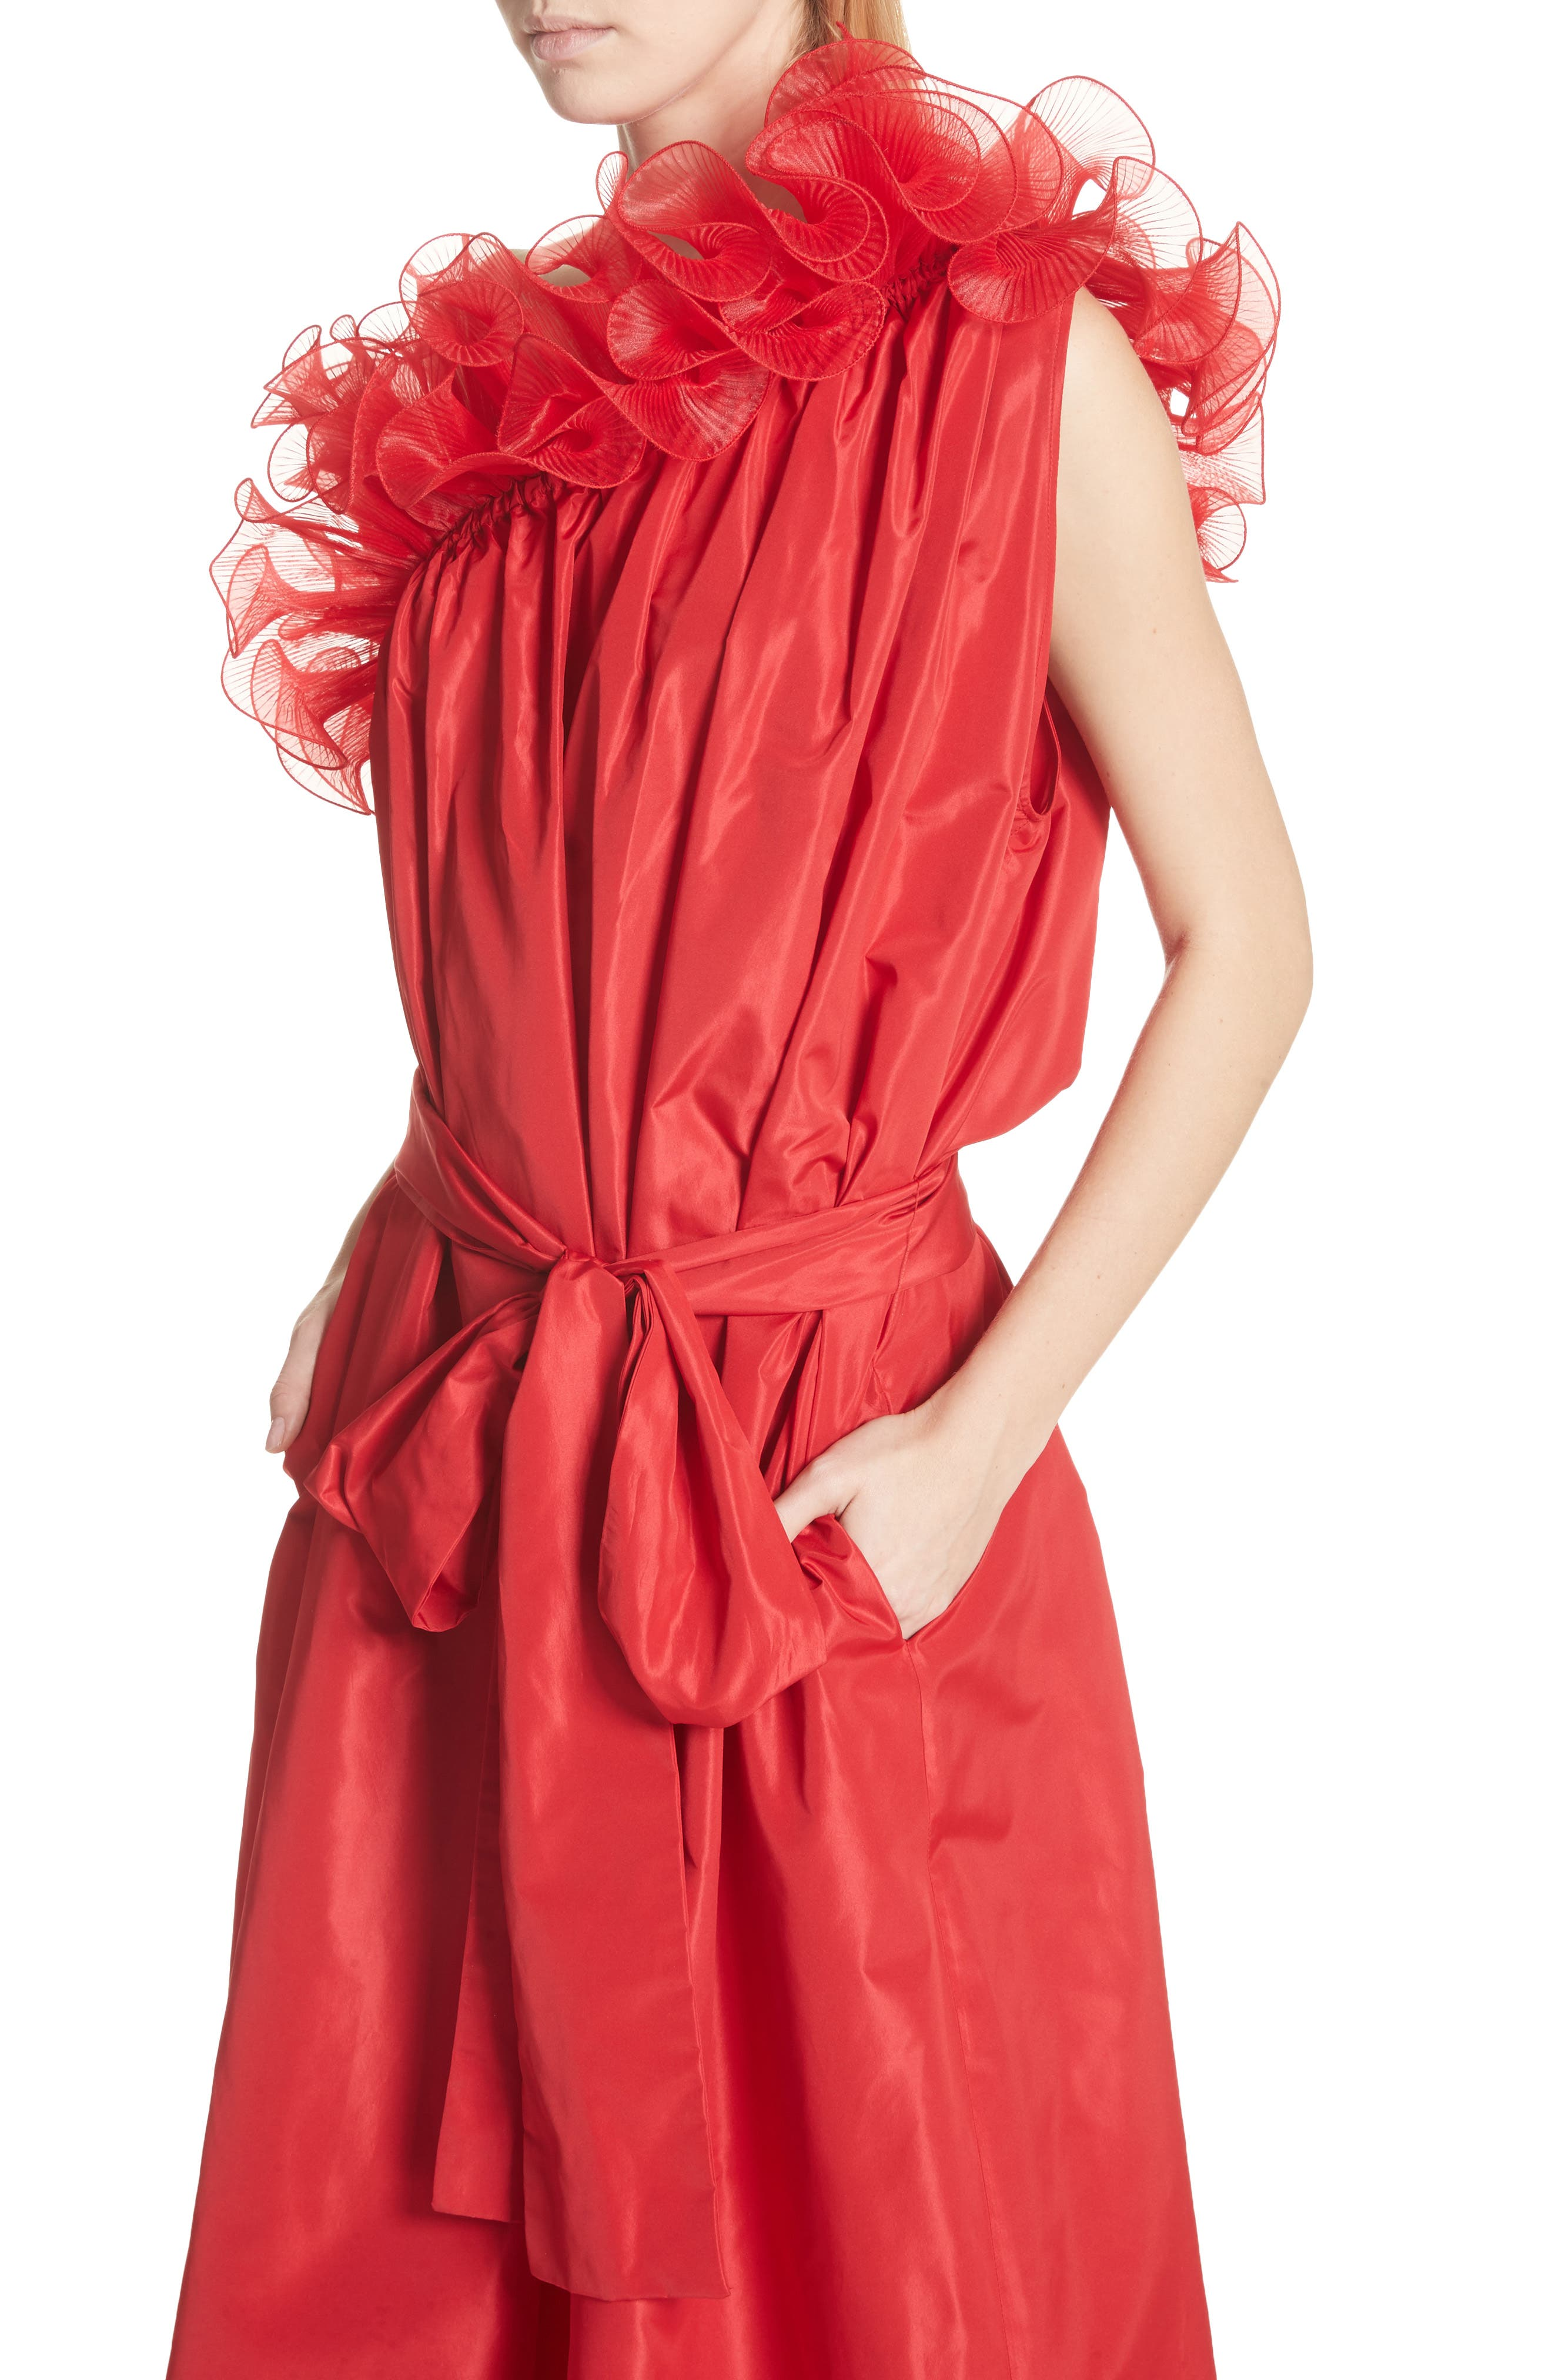 One-Shoulder Ruffle Taffeta Dress,                             Alternate thumbnail 4, color,                             Red